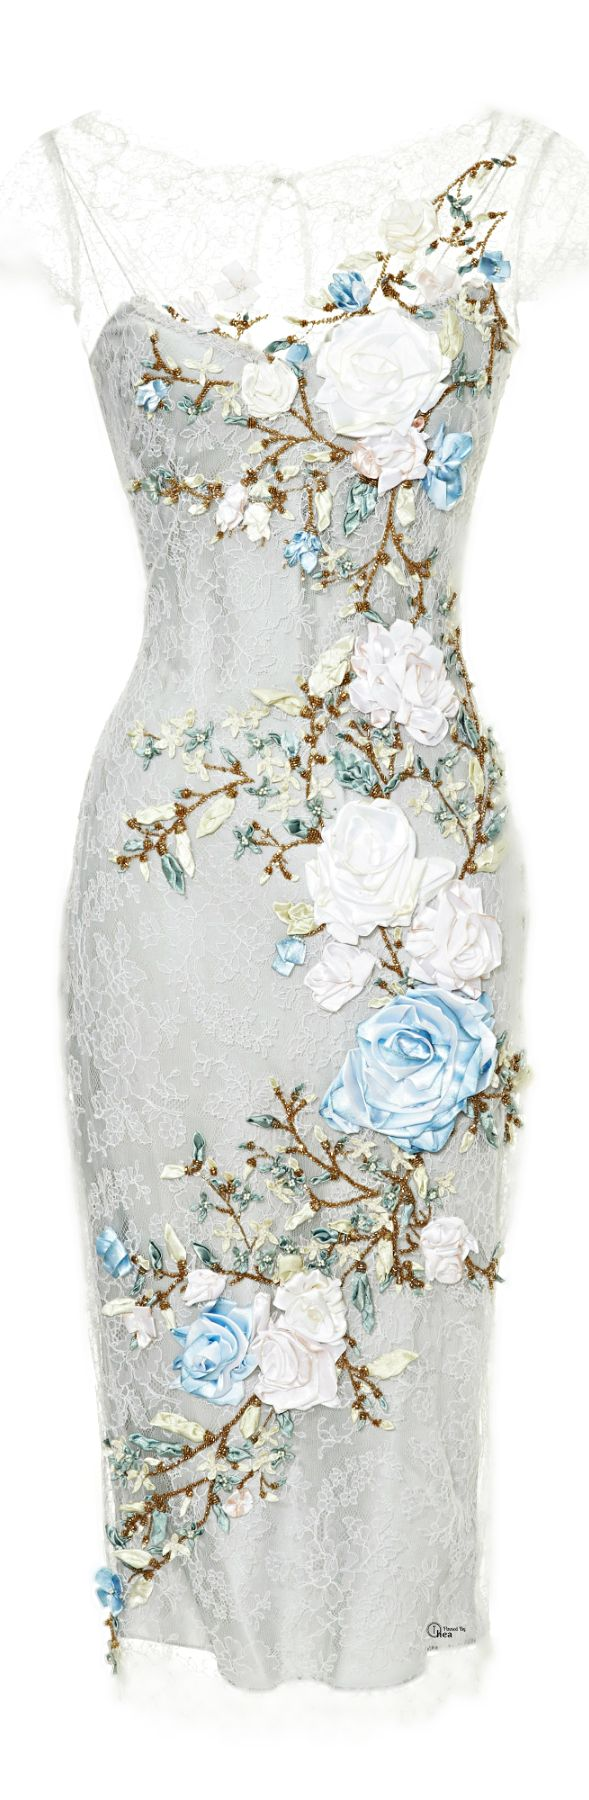 Marchesa ● Spring 2014, Chantilly Lace Cocktail Flower Dress